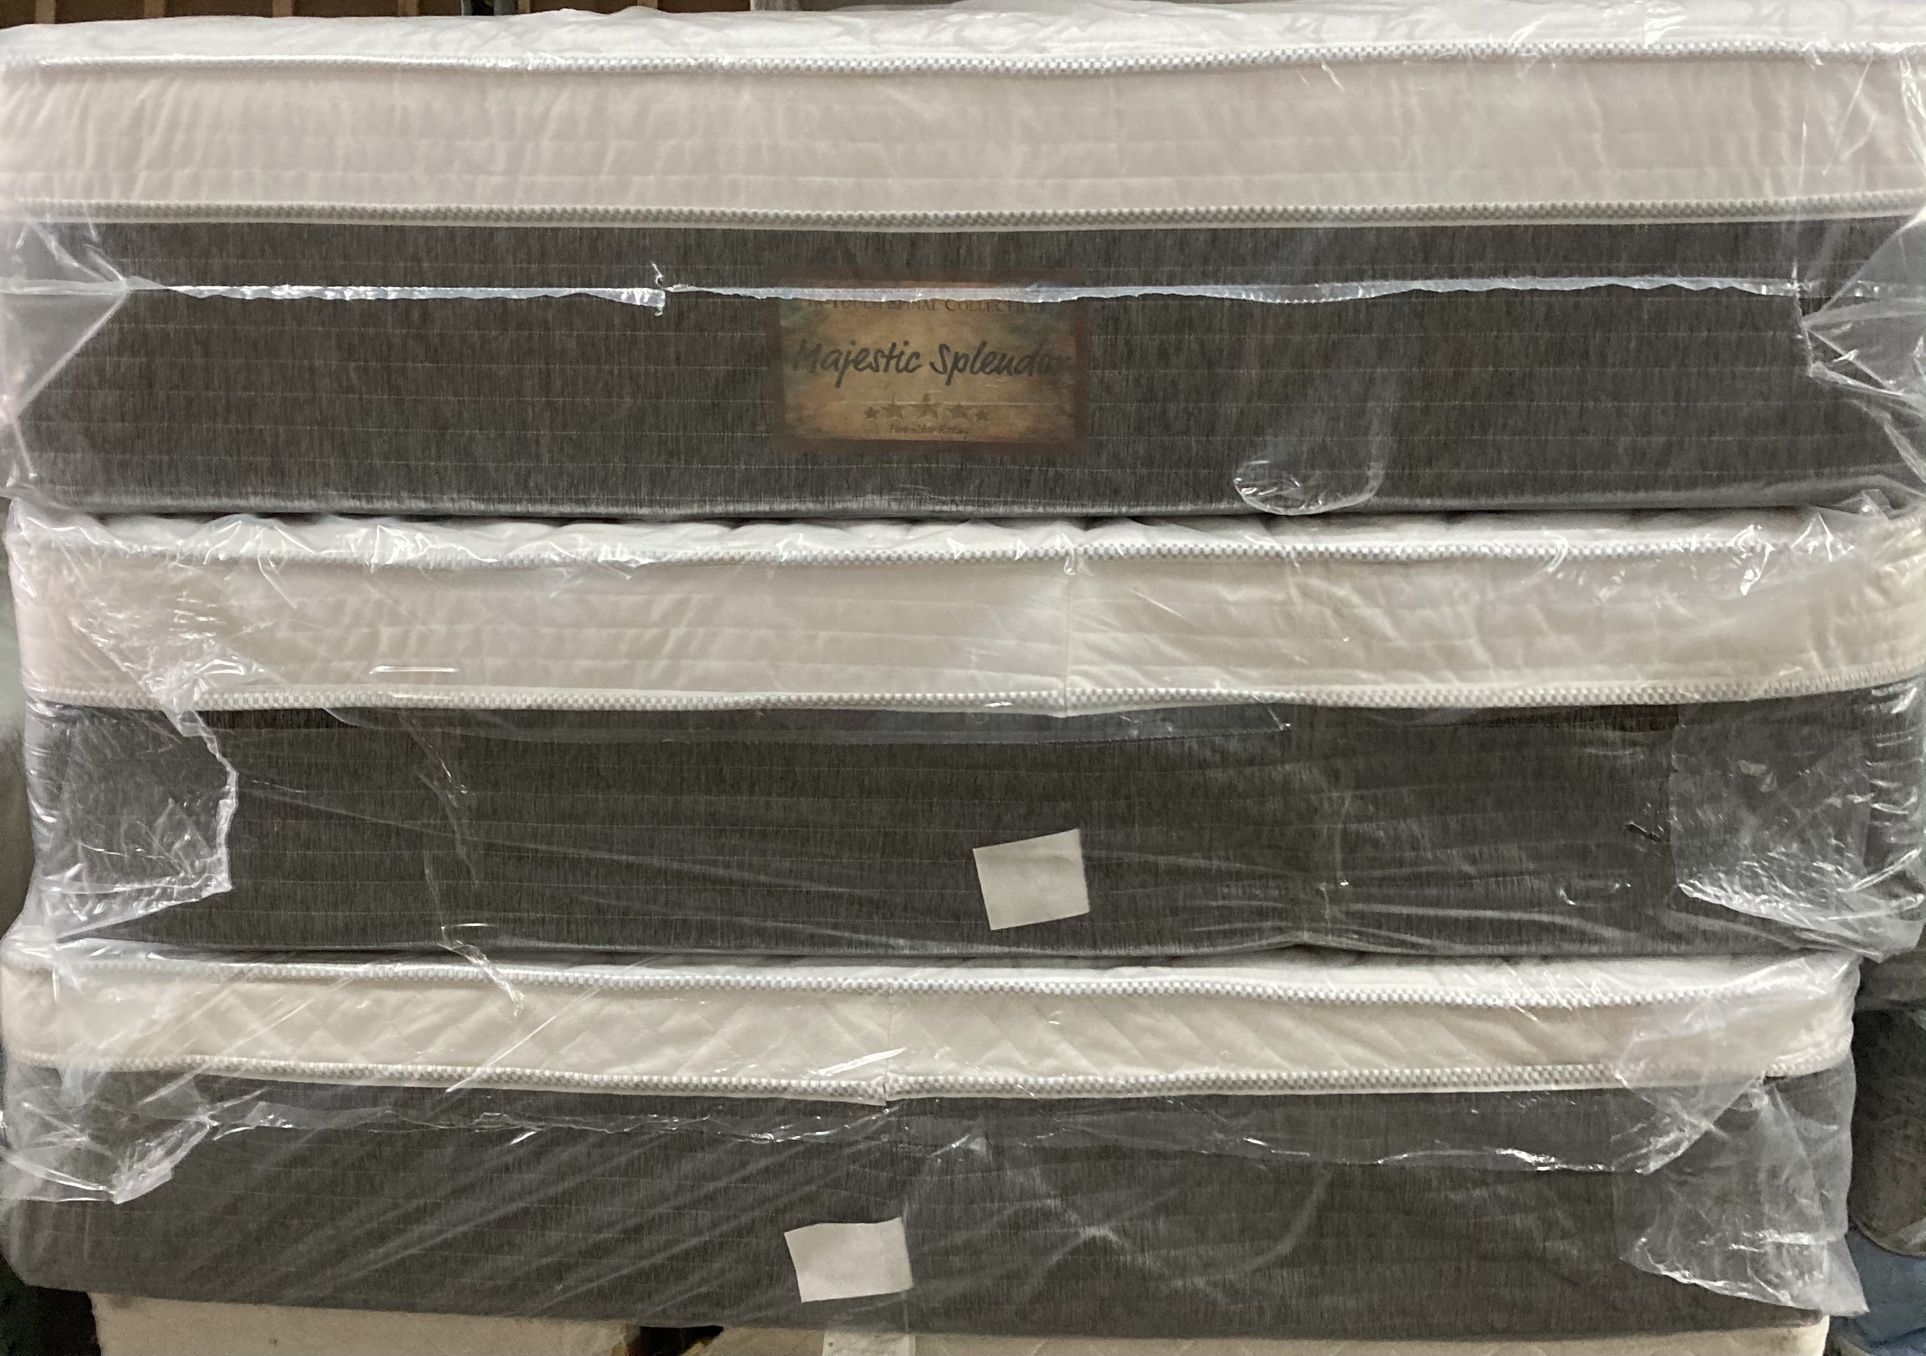 😴😴 PILLOW TOP MATTRESS ALL SIZE BRAND NEW STARTING AT $170 BEST PRICE IN TOWN😴😴